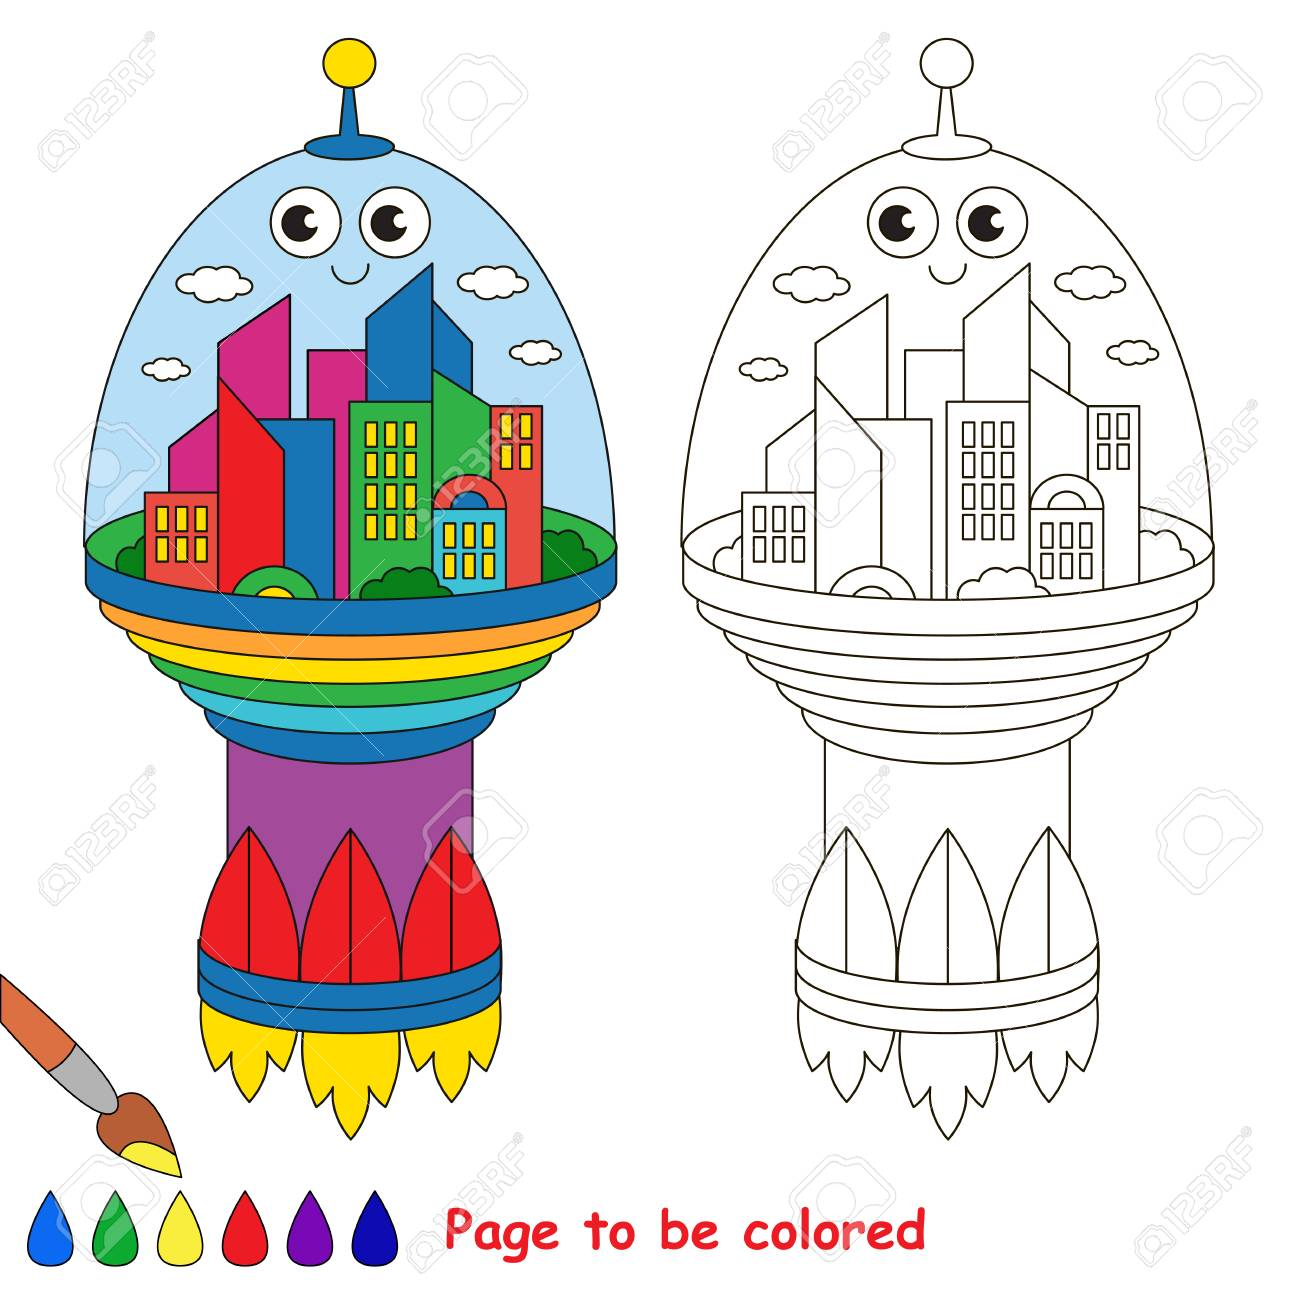 space city to be colored the coloring book for preschool kids with easy educational gaming level